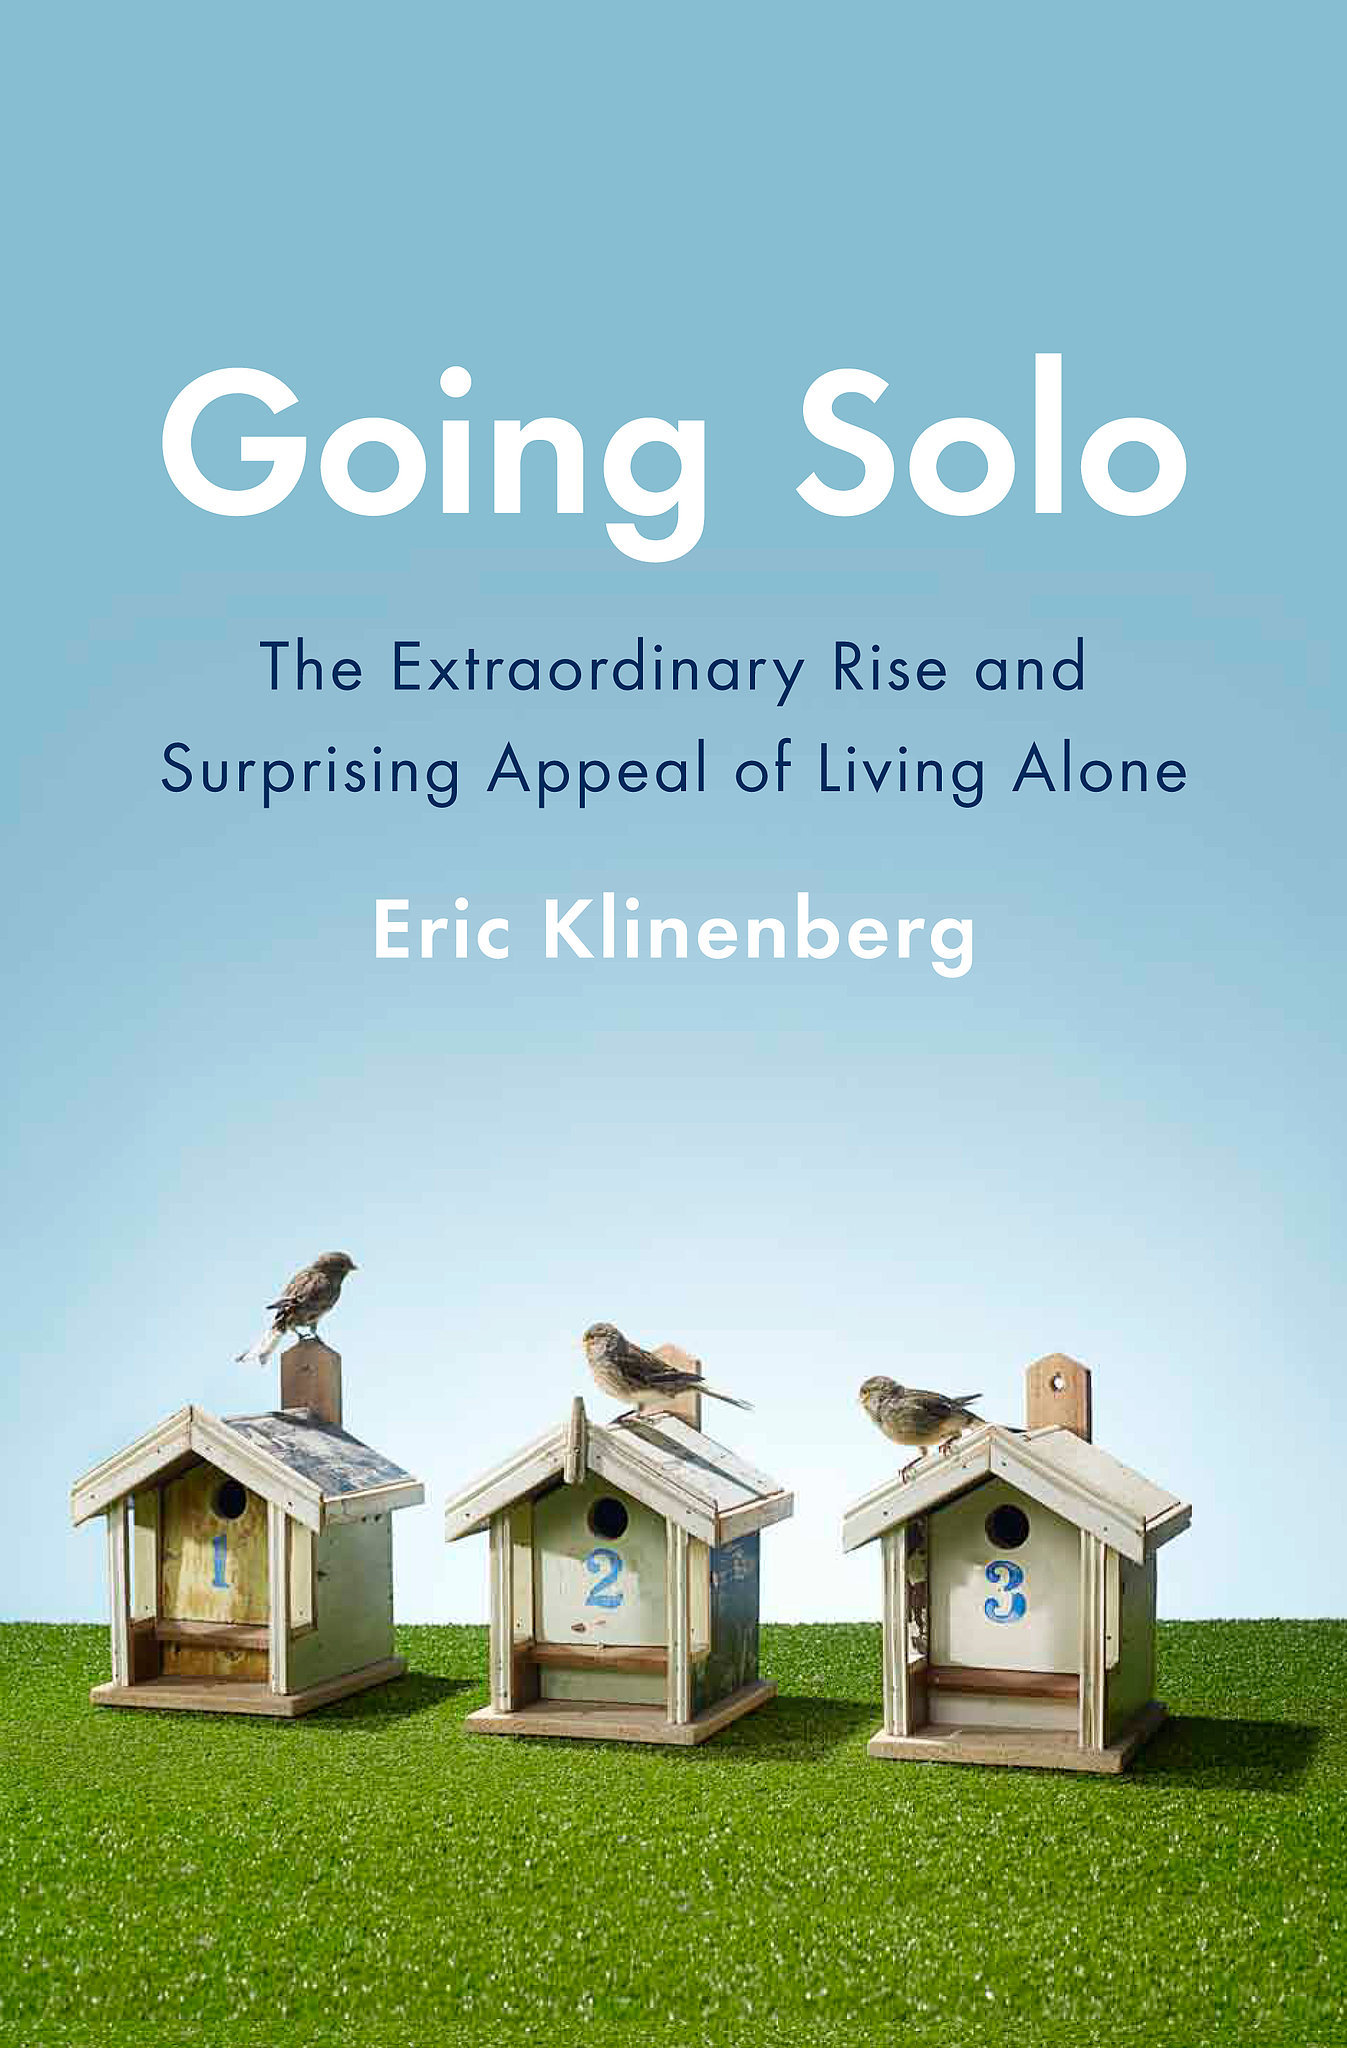 Going Solo